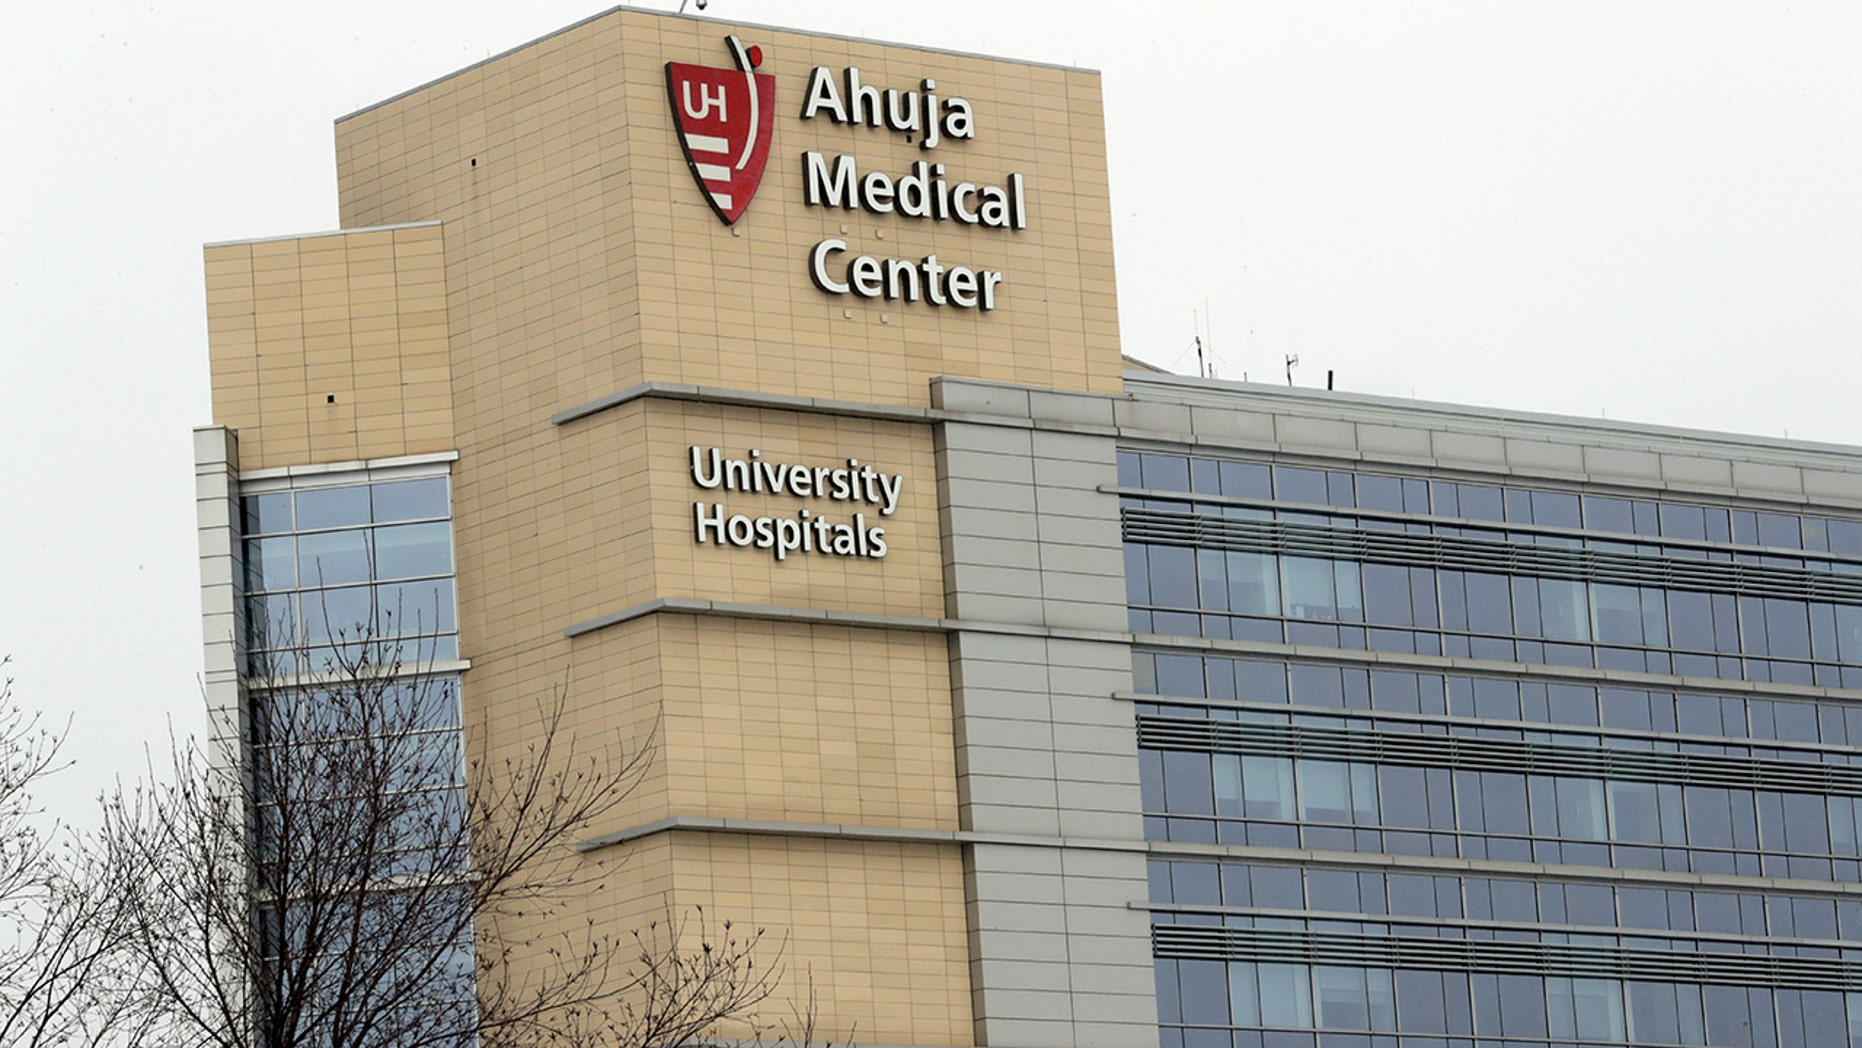 University Hospitals in suburban Cleveland said in the letter to clinic patients that it doesn't think there was a hack into its computers, but has made no final determination on that. The hospital says it hasn't discovered what caused the March 4 tank failure that potentially destroyed as many as 2,000 eggs and embryos.